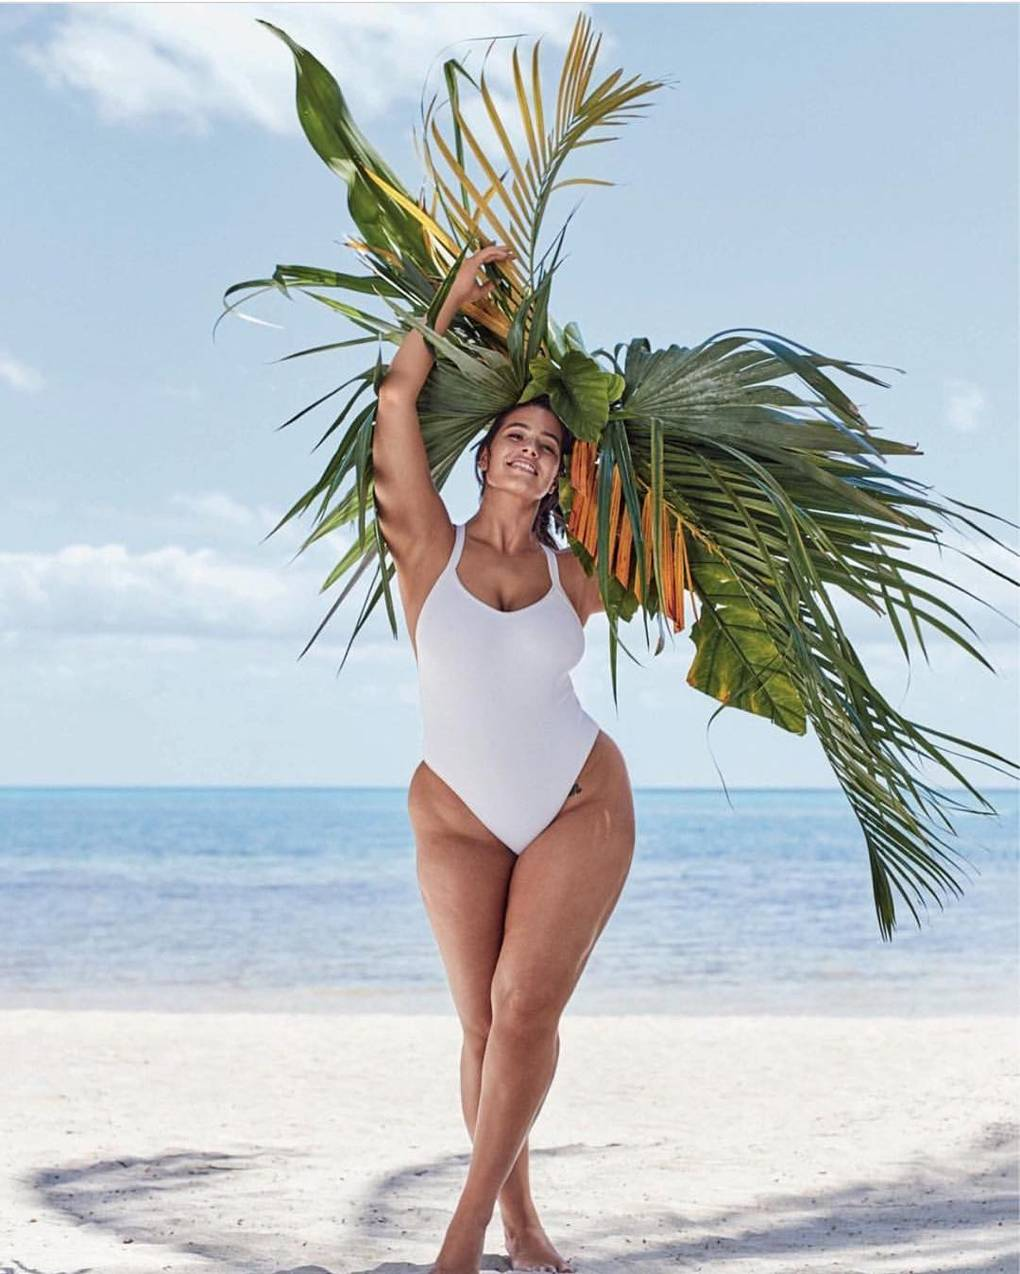 ea424258a7ad1 High-Cut Swimsuit Fashion Trend - The Joy Of A High-Cut Swimsuit ...